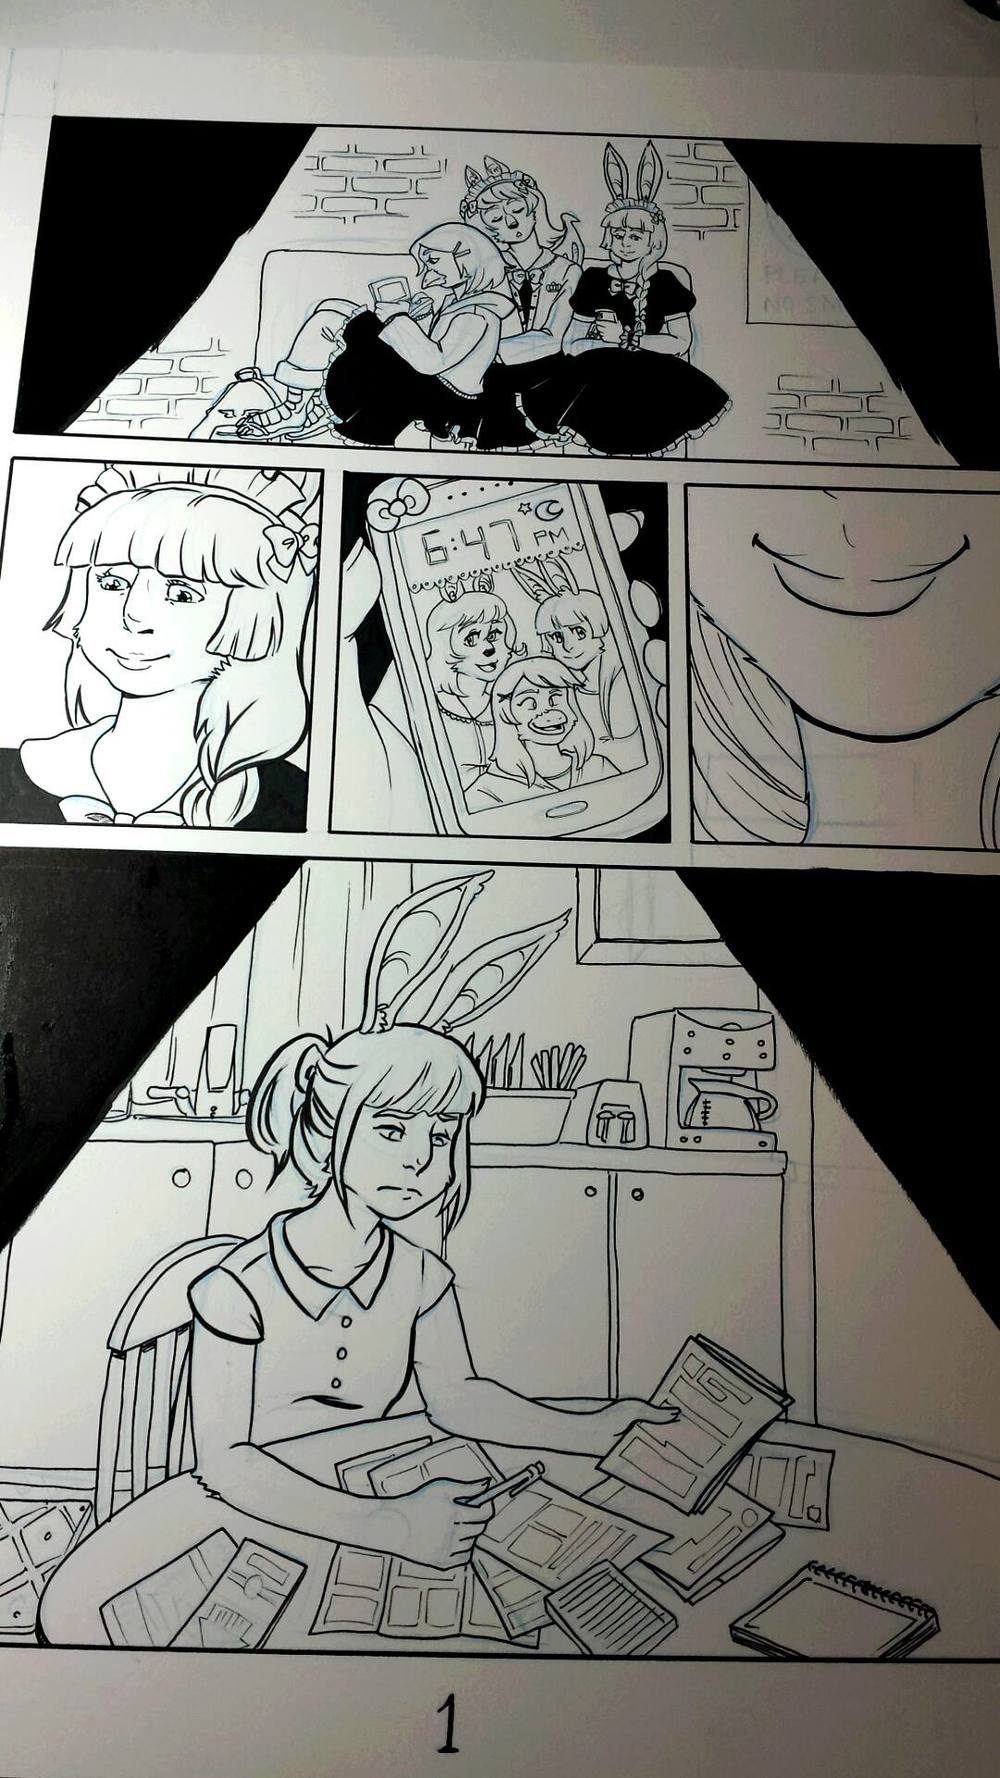 Photo of the first page right after I finished inking it (and smudging it, which will be fixed in Photoshop).  I decided to use a combination of liner pens and brush pens to ink this book, rather than the watercolor brush I ink Alencia comics with. I'm also considering doing Alencia comics in color in the future if I get more comfortable with coloring.